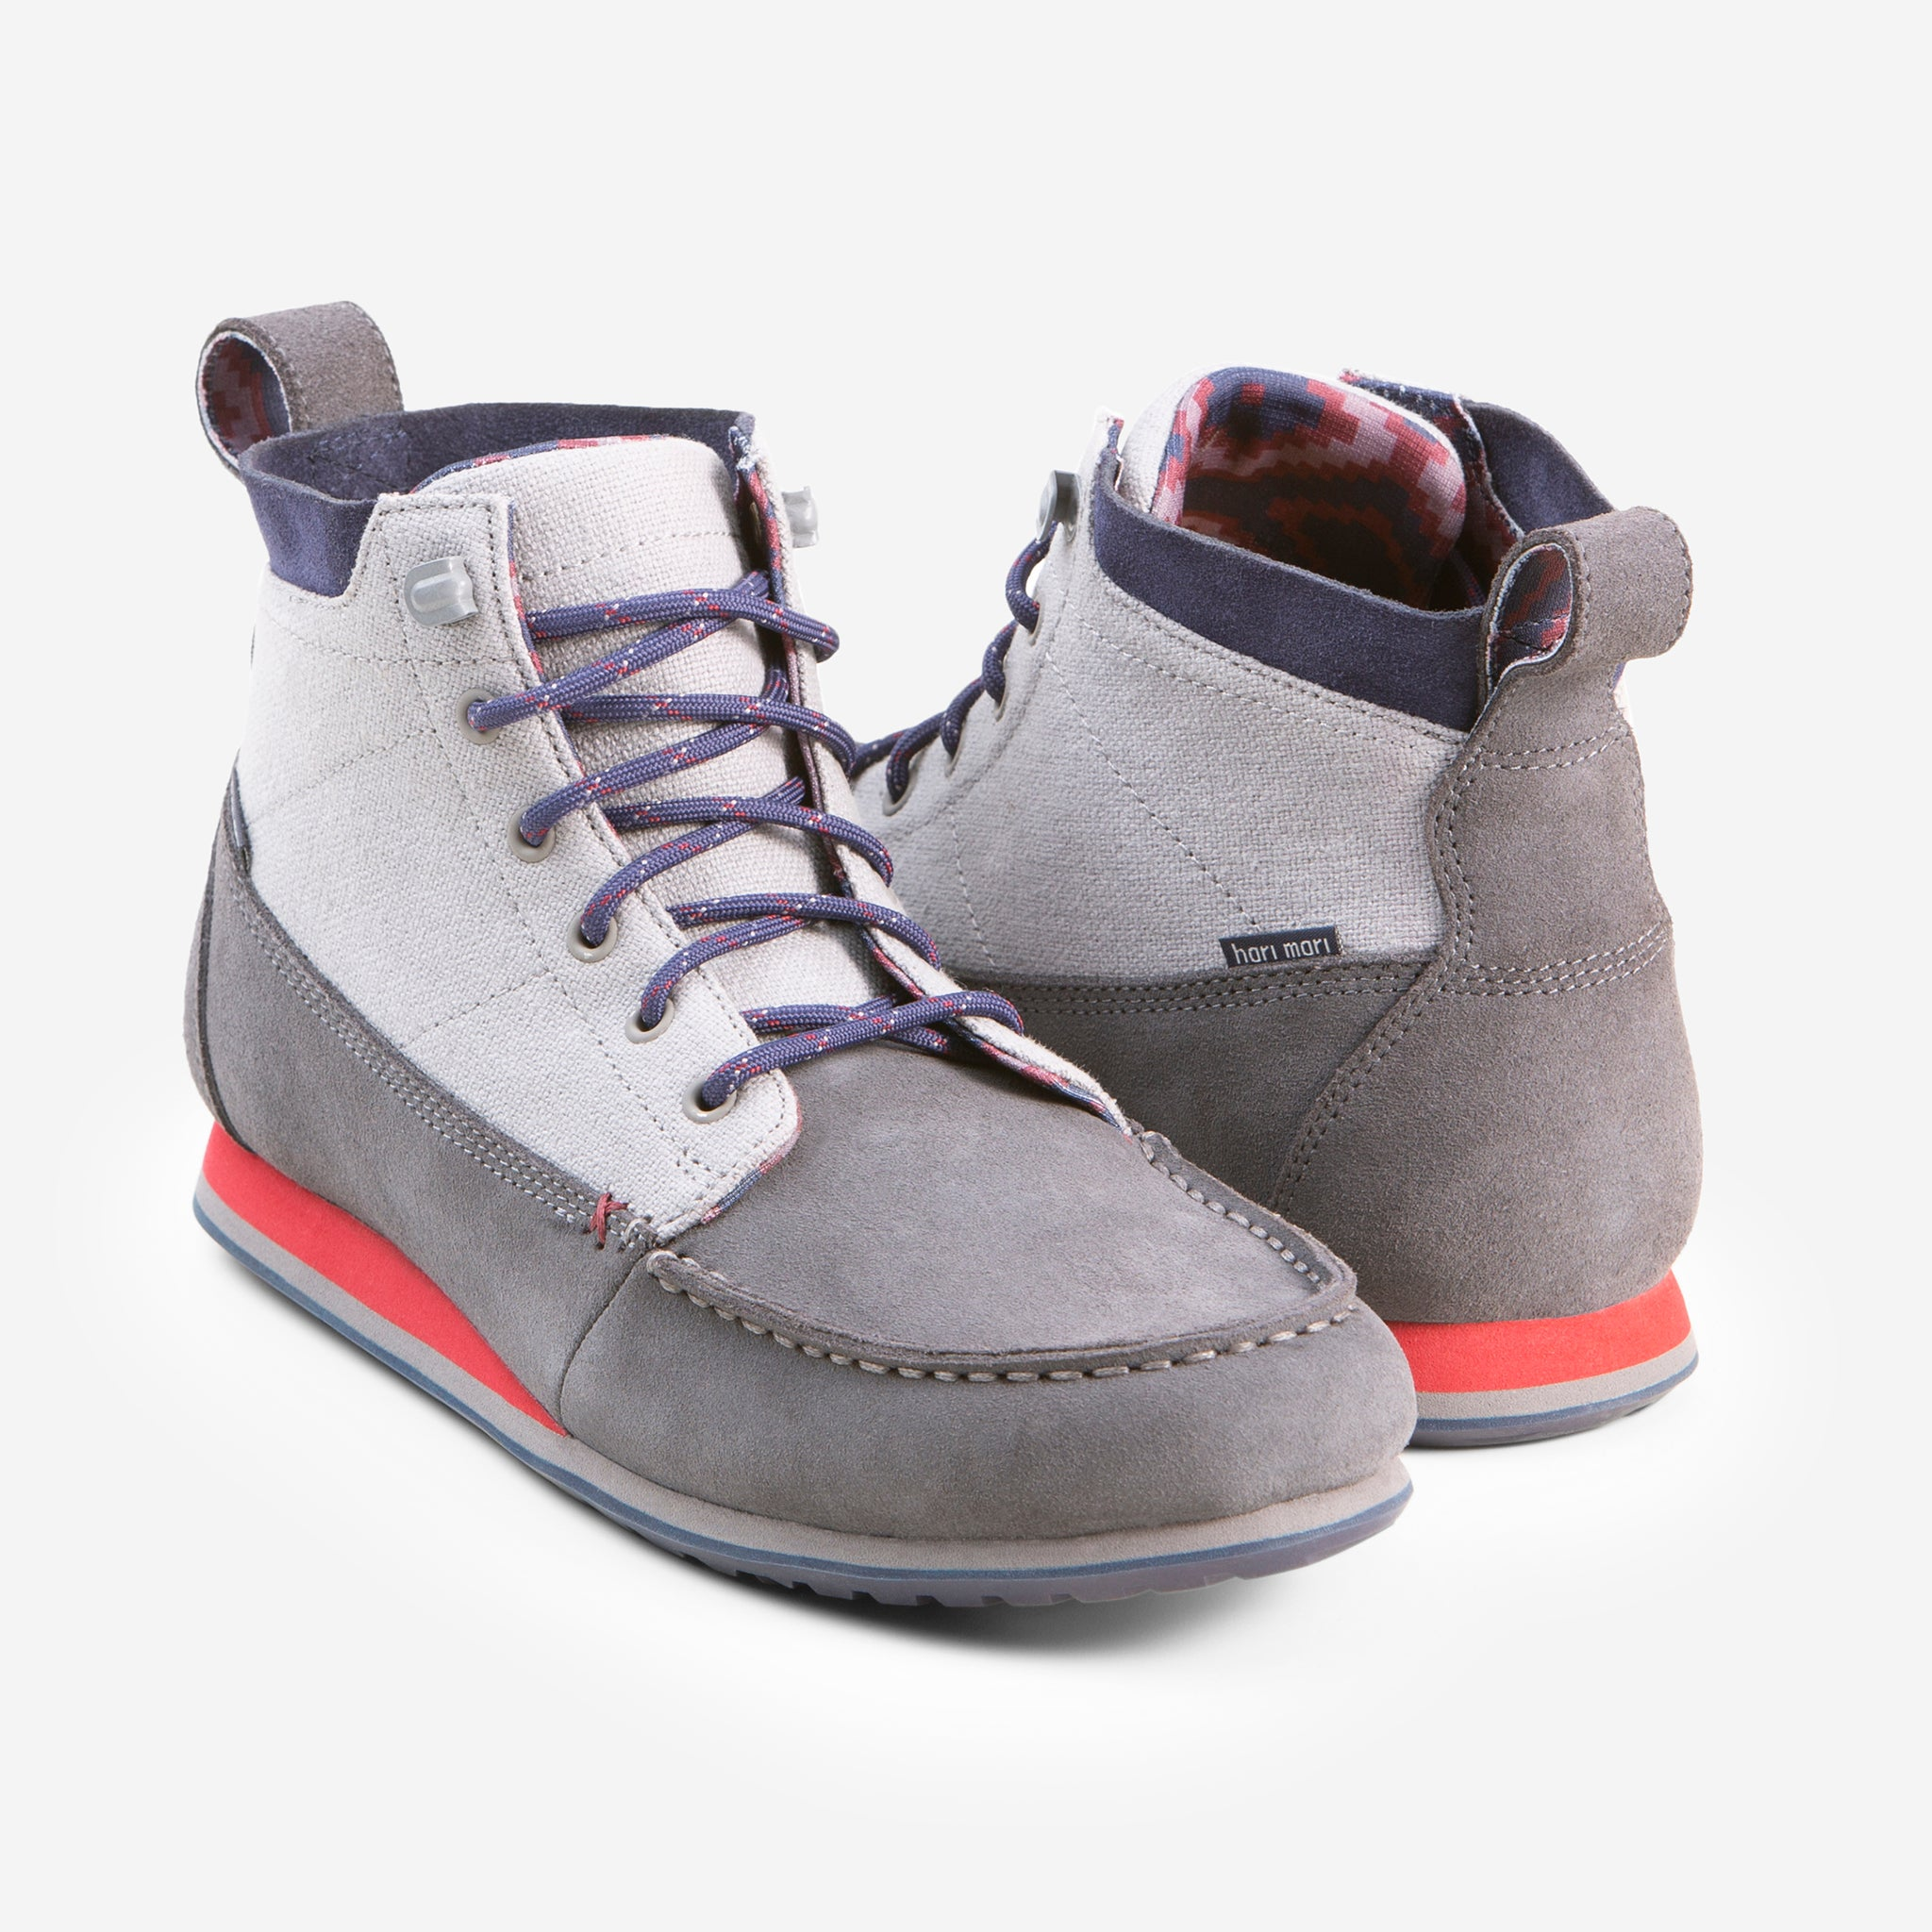 CanyonTreck Chukka - Men's - Gray - Front and Back View Image